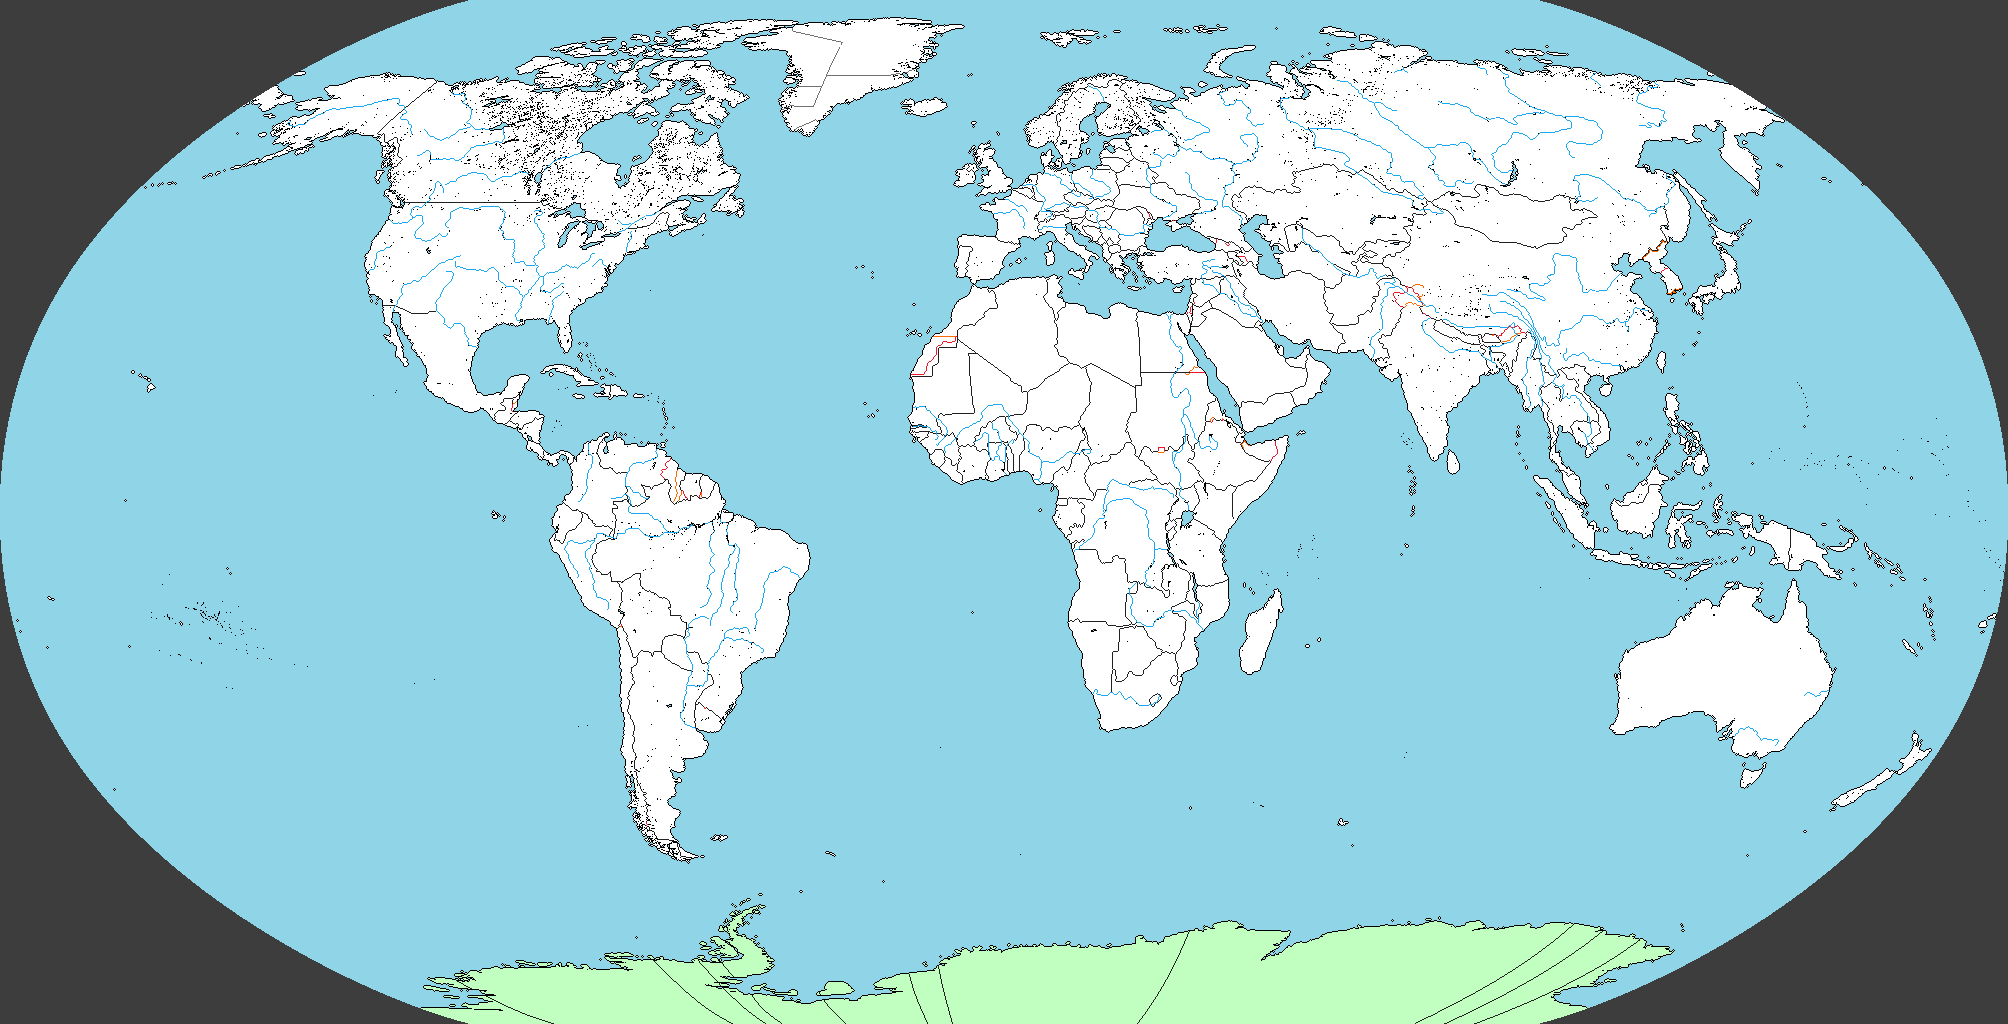 political borders + rivers.png